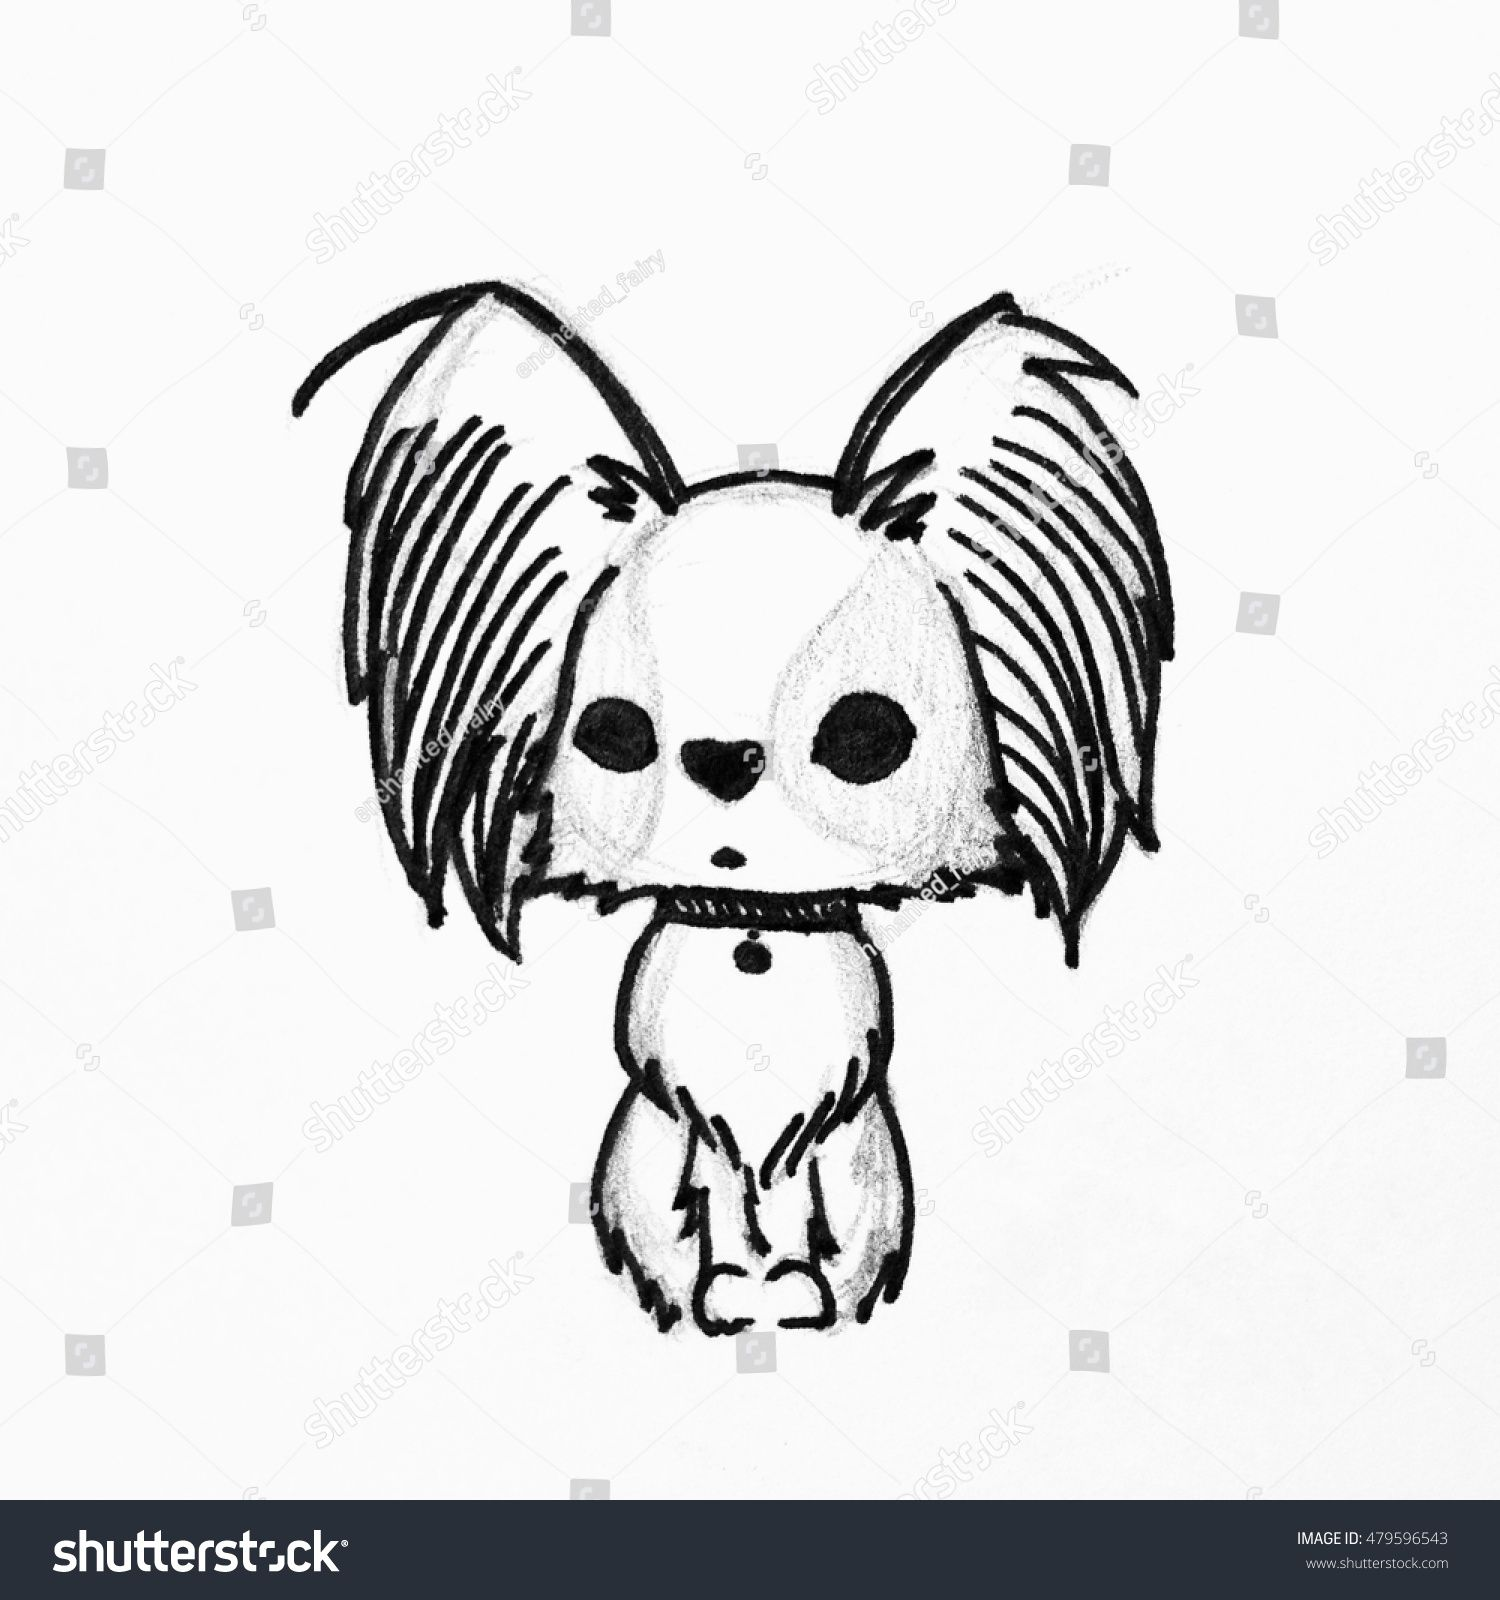 Cute cartoon dog hand drawing of papillon dog or butterfly dog continental toy spaniel papillon hand drawing isolated objects on white background for